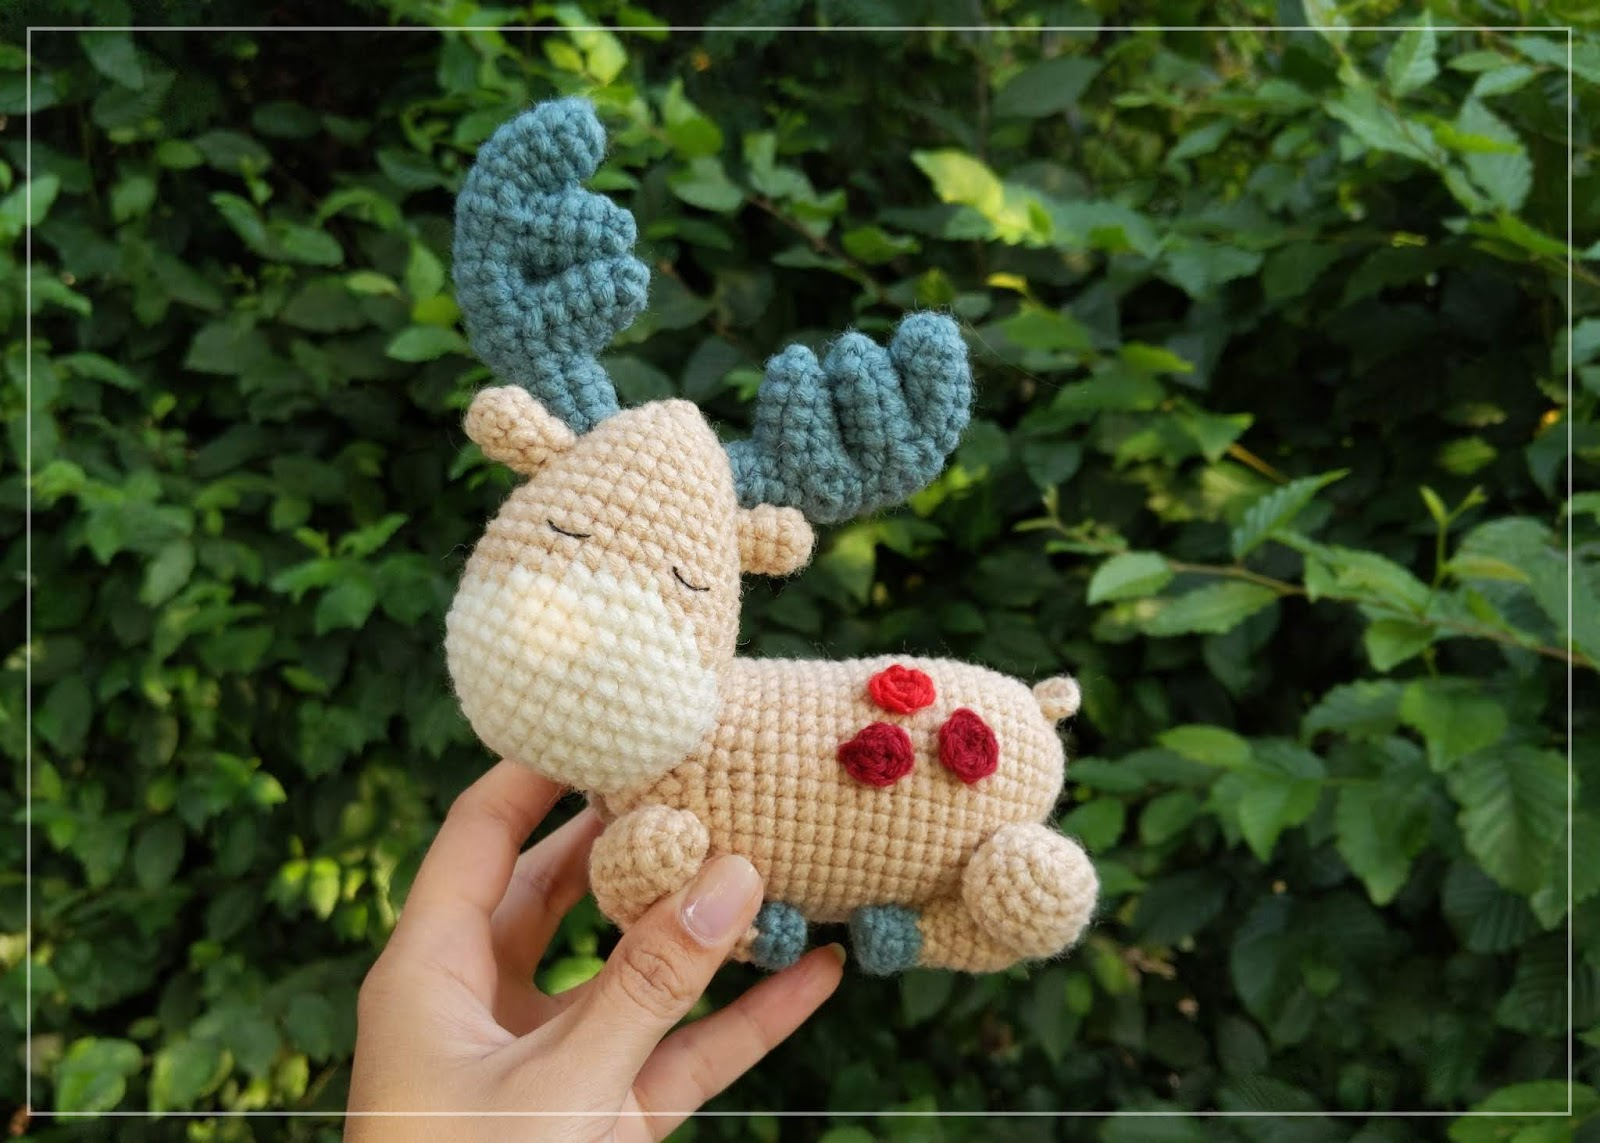 Cute Bunny Amigurumi Knitting Pattern - Knit Amigurumi Patterns | 1143x1600